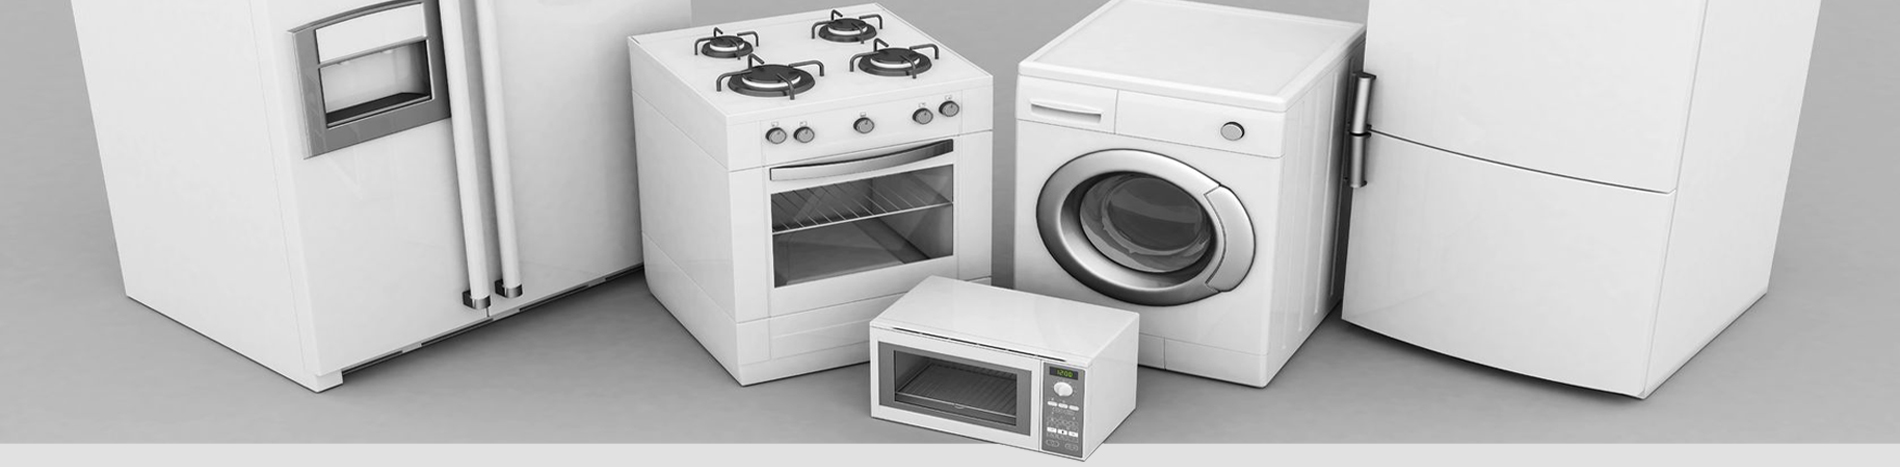 Home Appliance Repair Service In Aurora Co South East